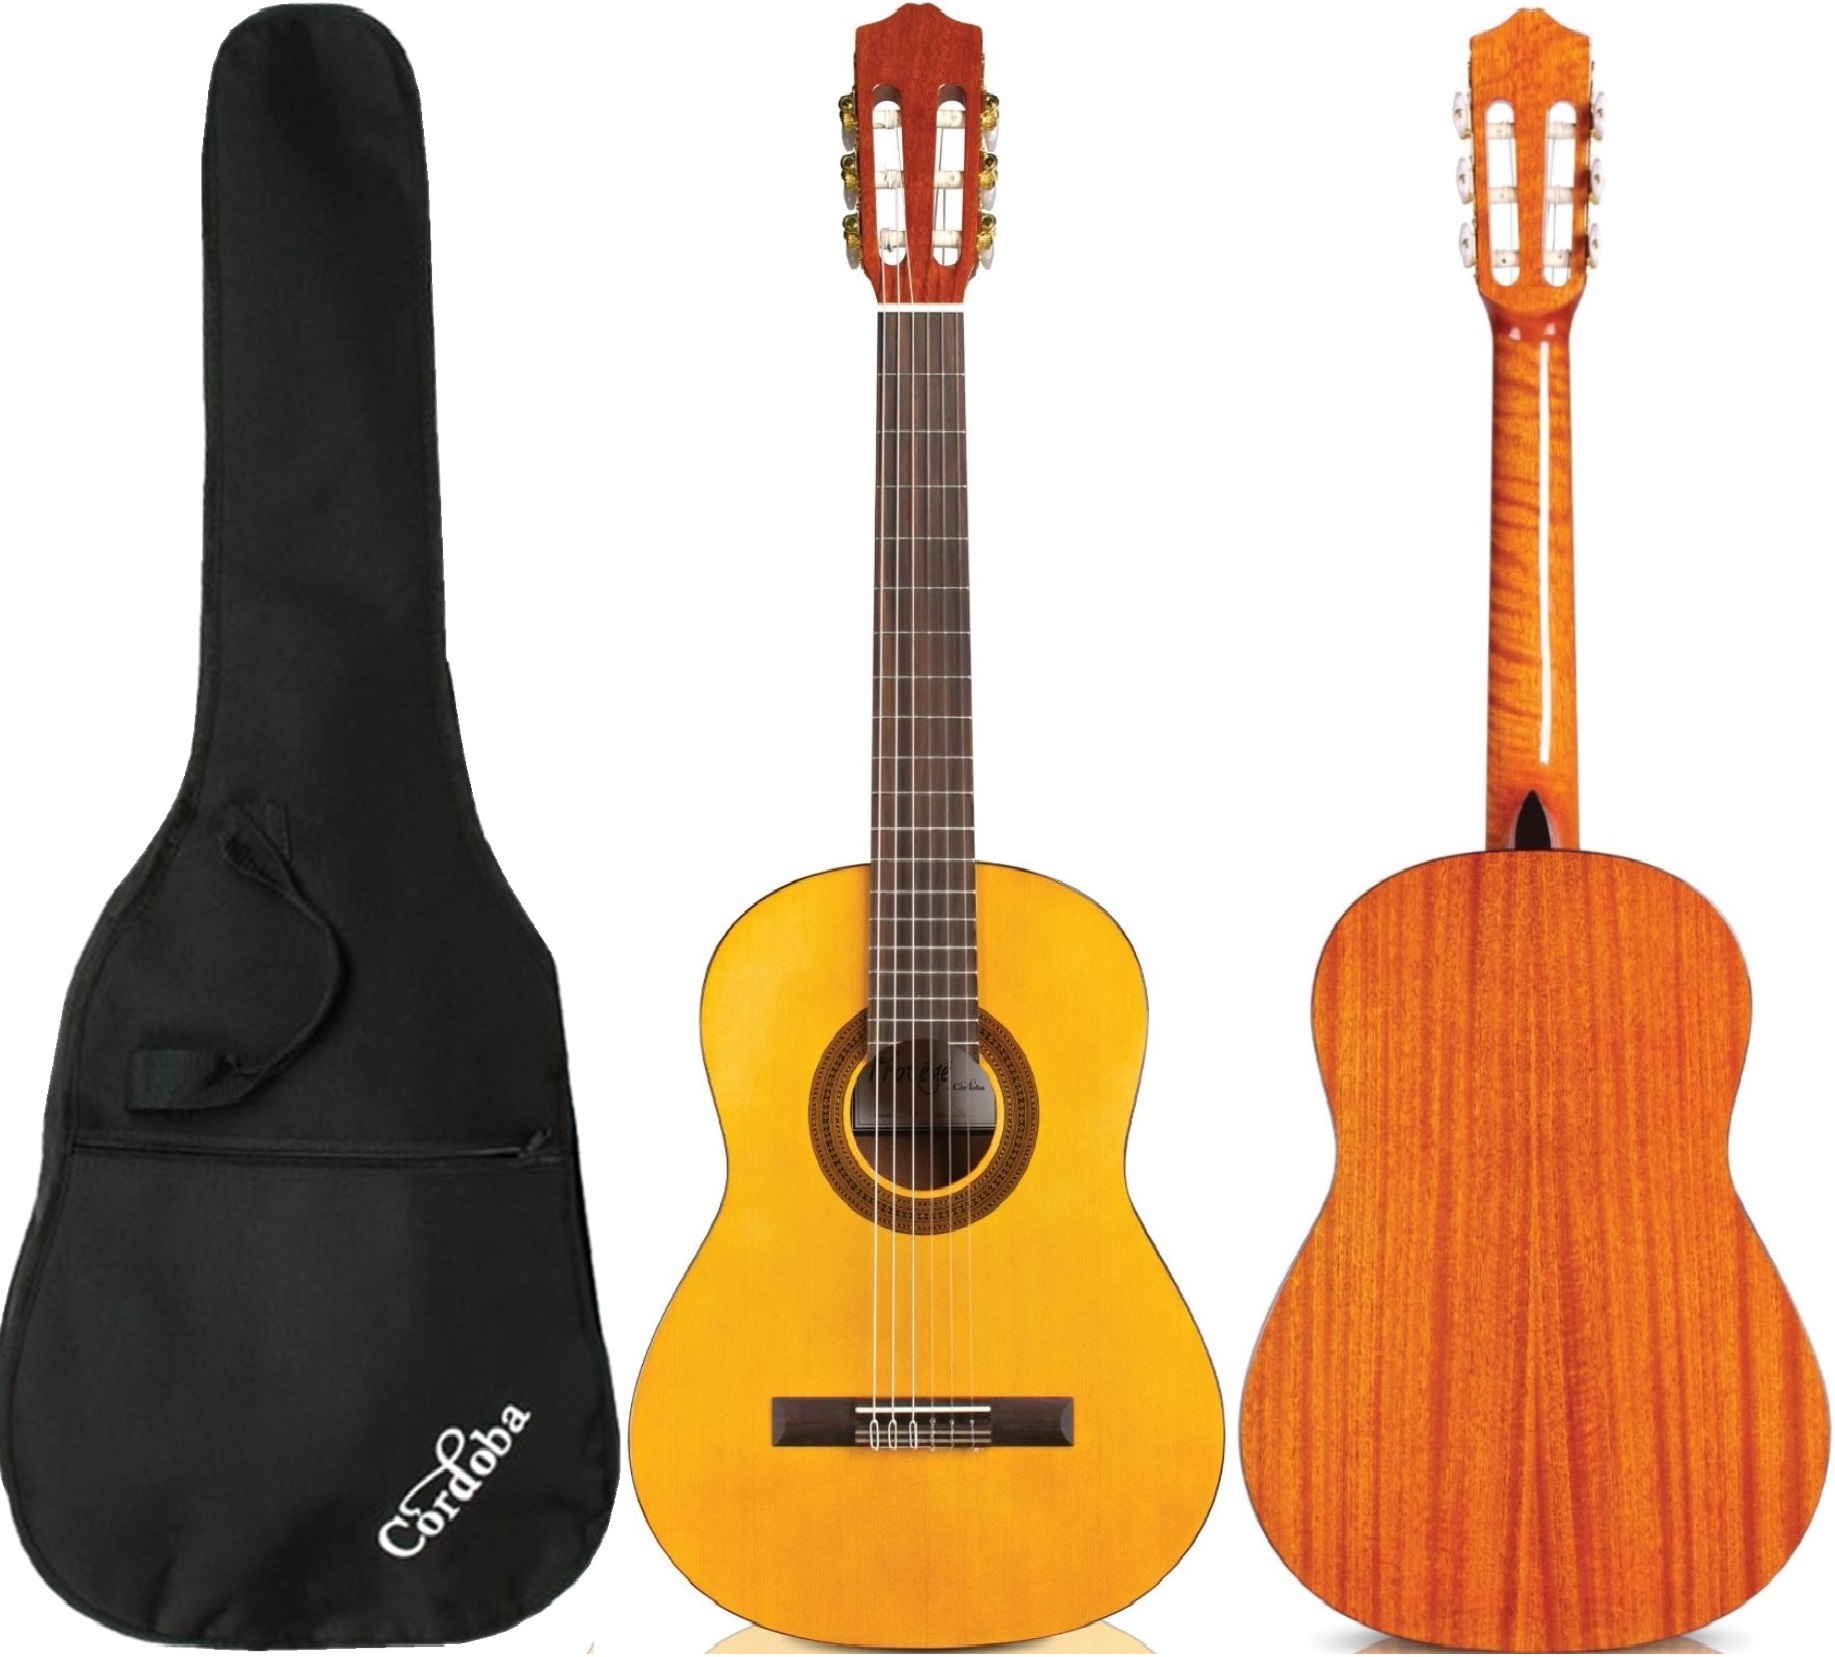 Cordoba C1 Protege Nylon-String Classical Acoustic Guitar Full-Size with Cordoba Bag ( Natural)